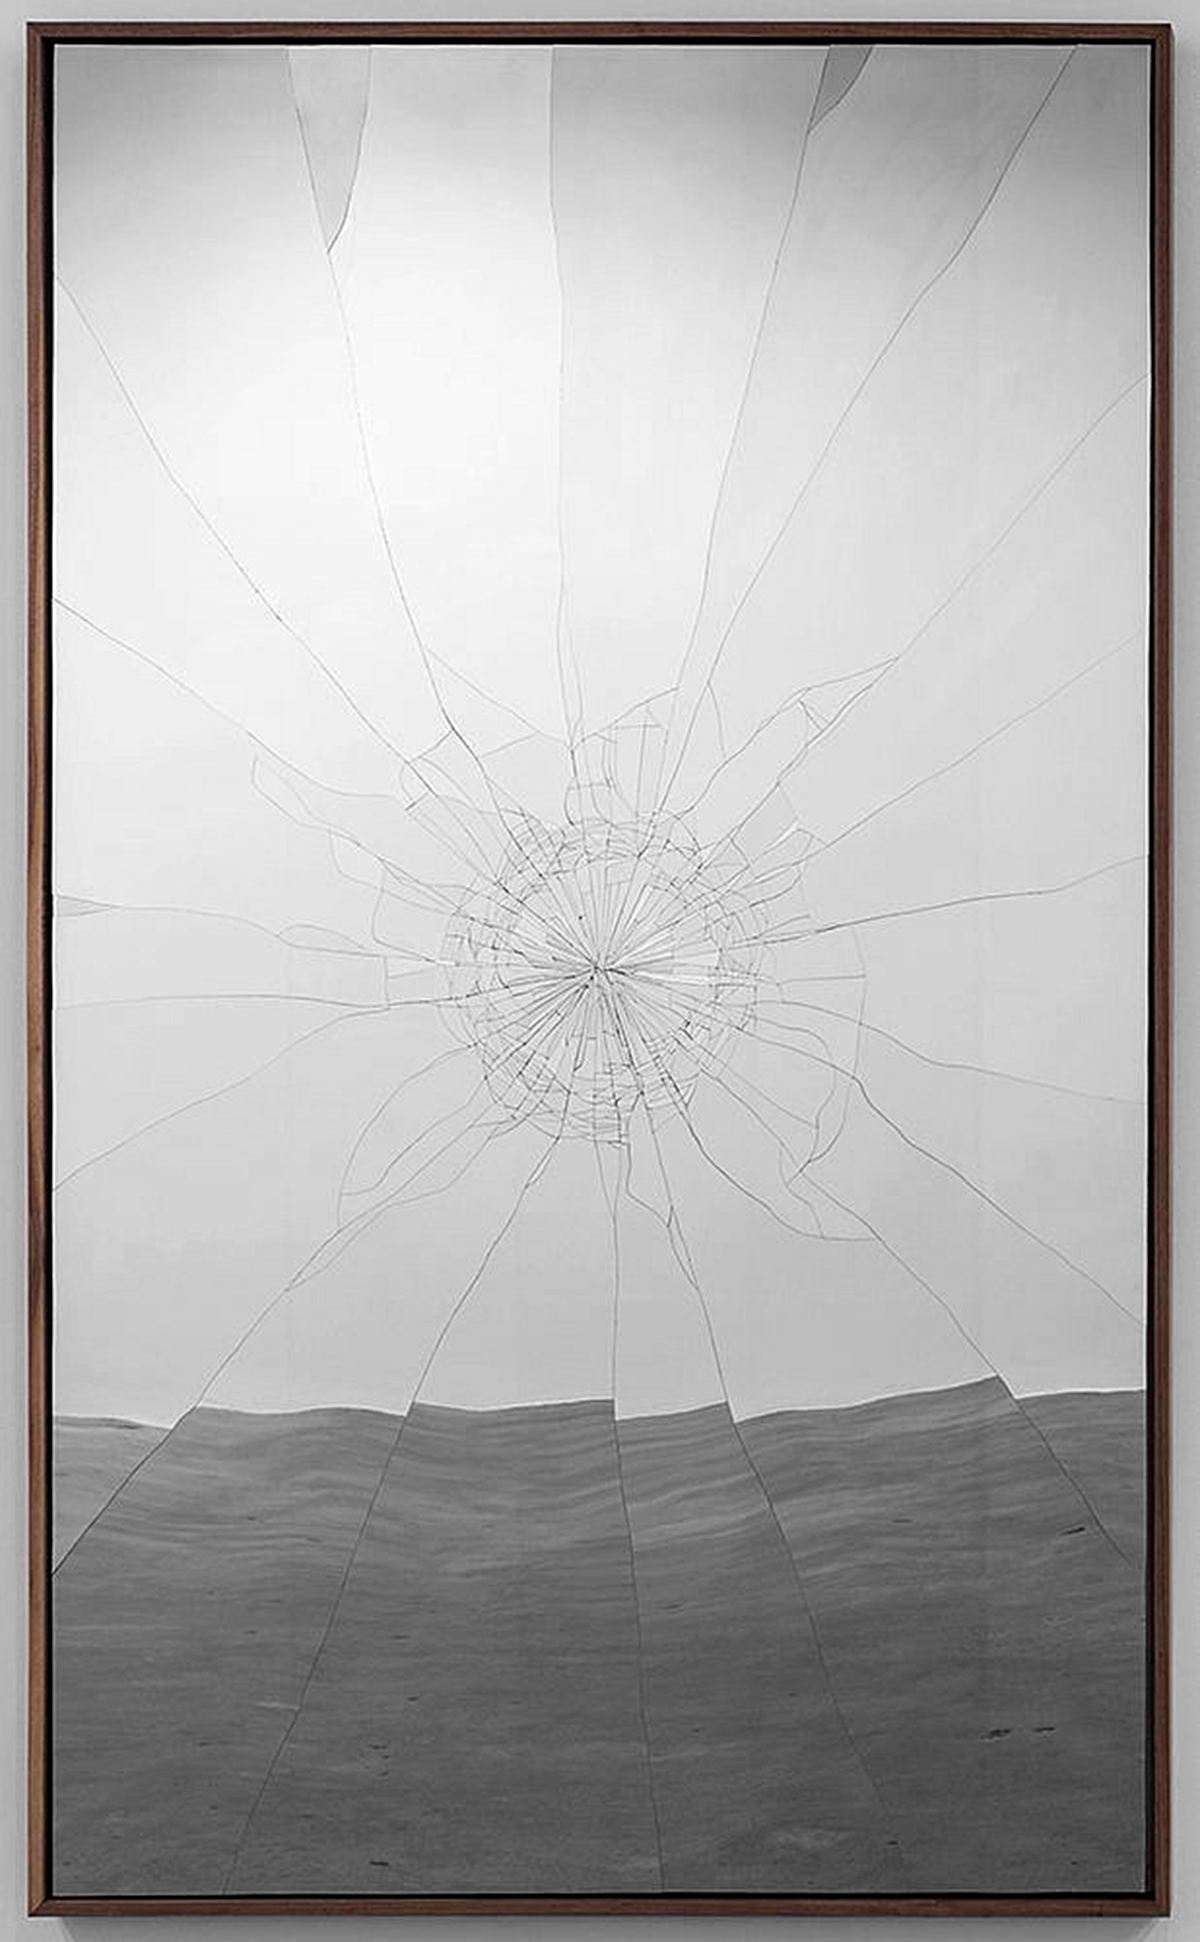 2015-16 Hand-cut stainless steel on panel, walnut frame 80 x 48 x 2.5 inches (121.9 x 203.2 cm) - Marc Straus Gallery